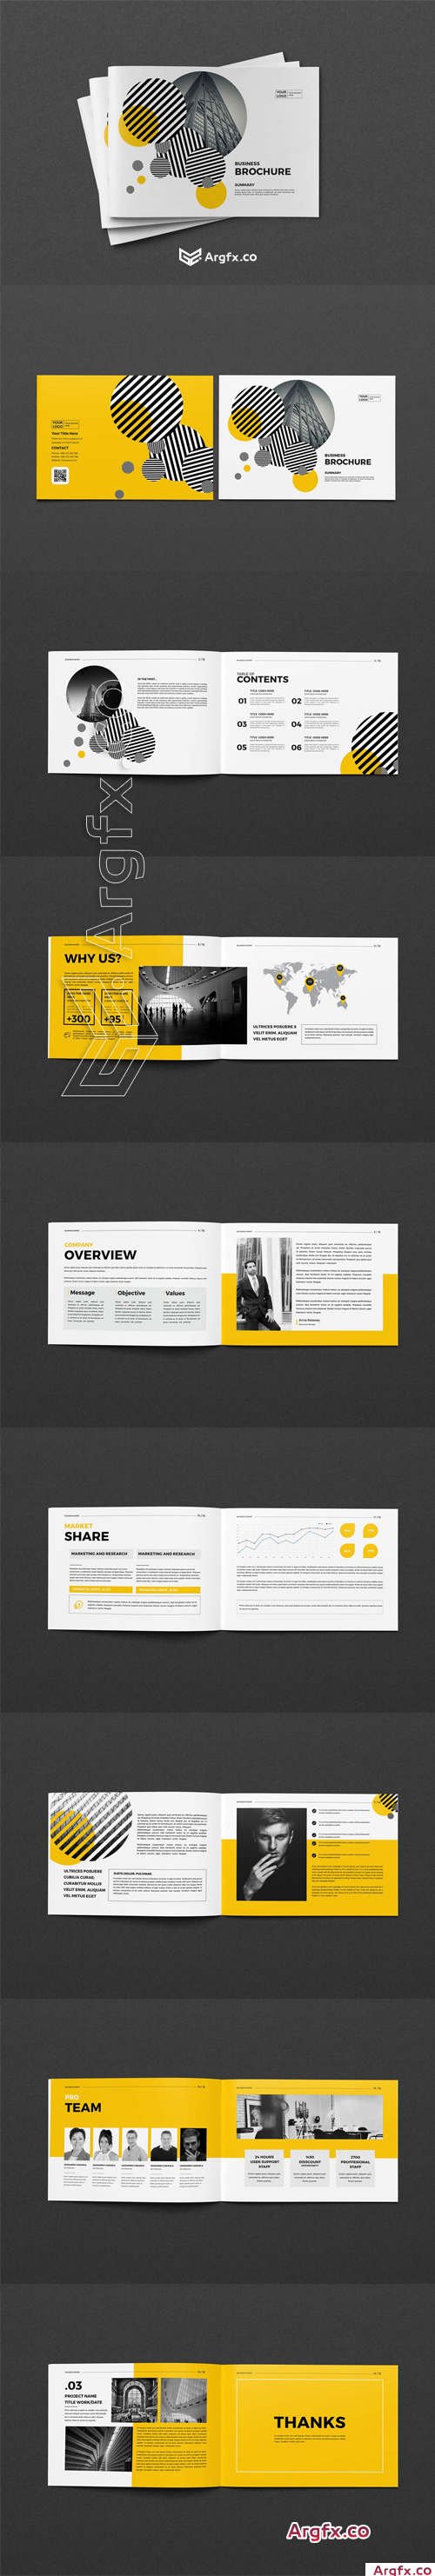 CreativeMarket - A5 Business Brochure 4359298